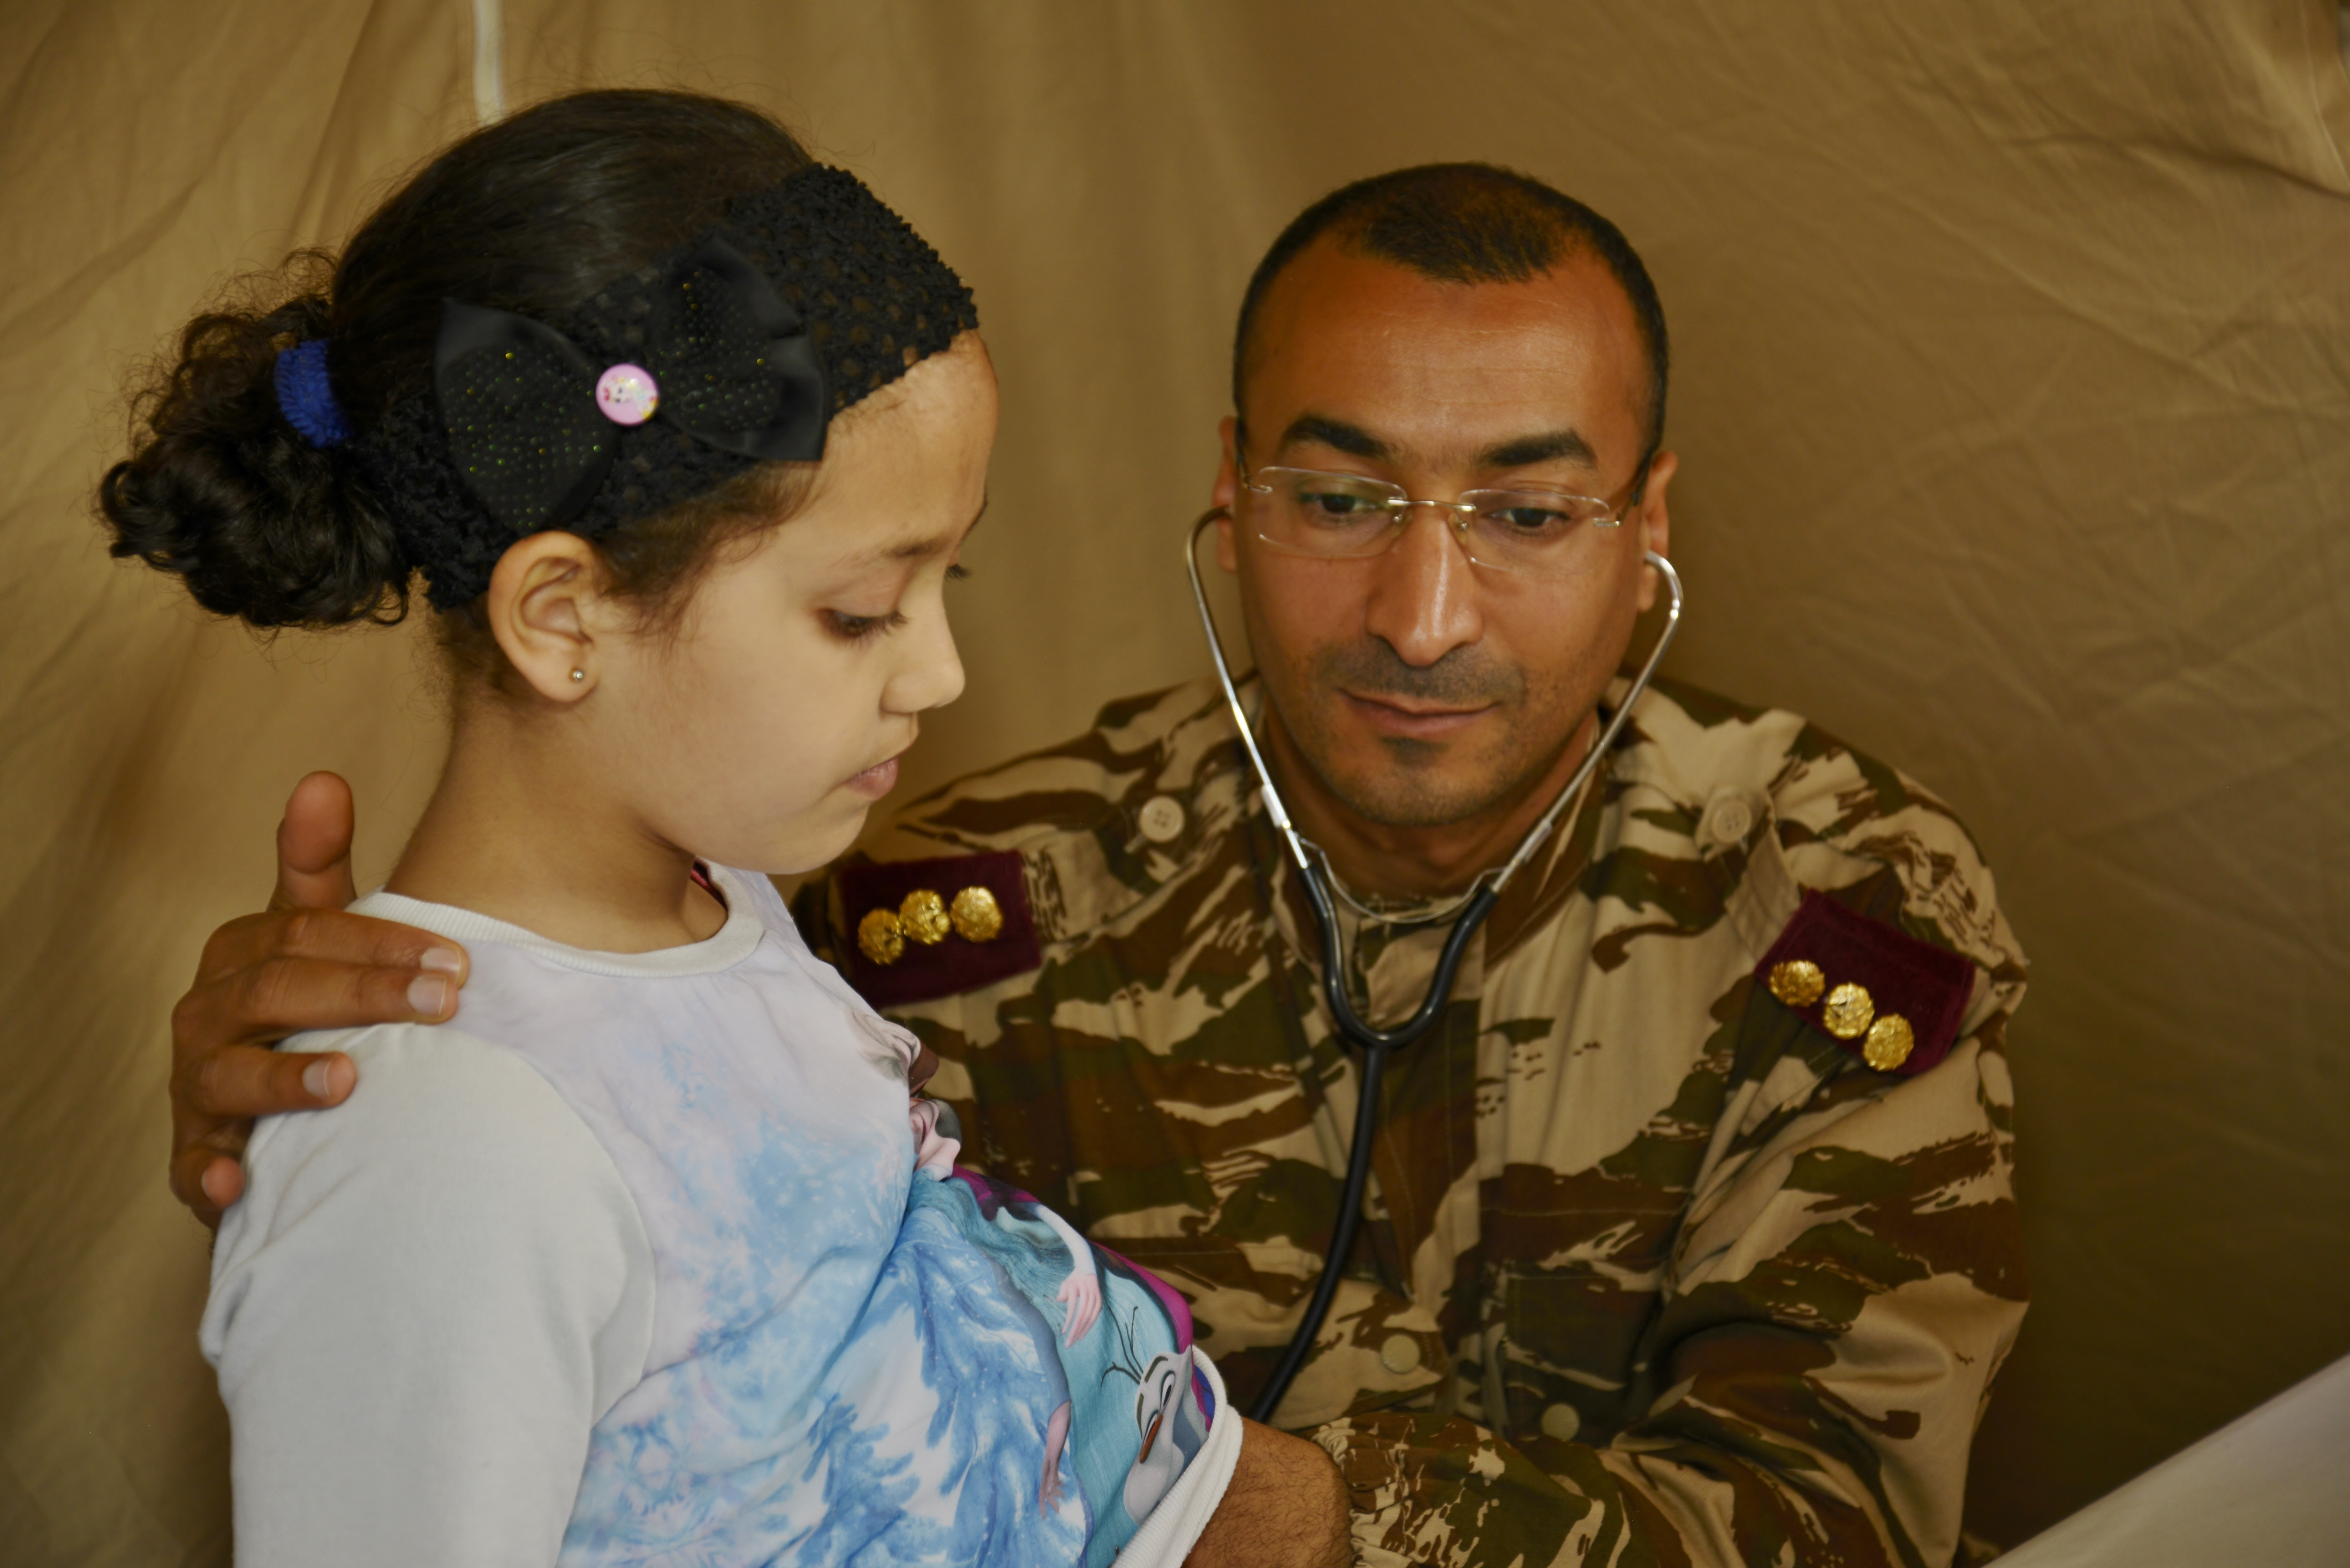 Moroccan Capt. Abdelilah Radi, a pediatrician with the Moroccan Royal Armed Forces, checks the heart of a girl during the Humanitarian Civic Assistance component of Exercise African Lion 2018 in Bounaamane, Morocco, April 24, 2018.  Exercise African Lion 2018 is a Chairman of the Joint Chiefs of Staff-sponsored, U.S. African Command-scheduled, U.S. Marine Corps Forces Europe and Africa-led, joint and combined exercise conducted in the Kingdom of Morocco. African Lion offers an opportunity to improve interoperability and cooperation while demonstrating the strong military bond that exists between the participating nations. (U.S. Army National Guard photo by Maj. Samantha Madsen)